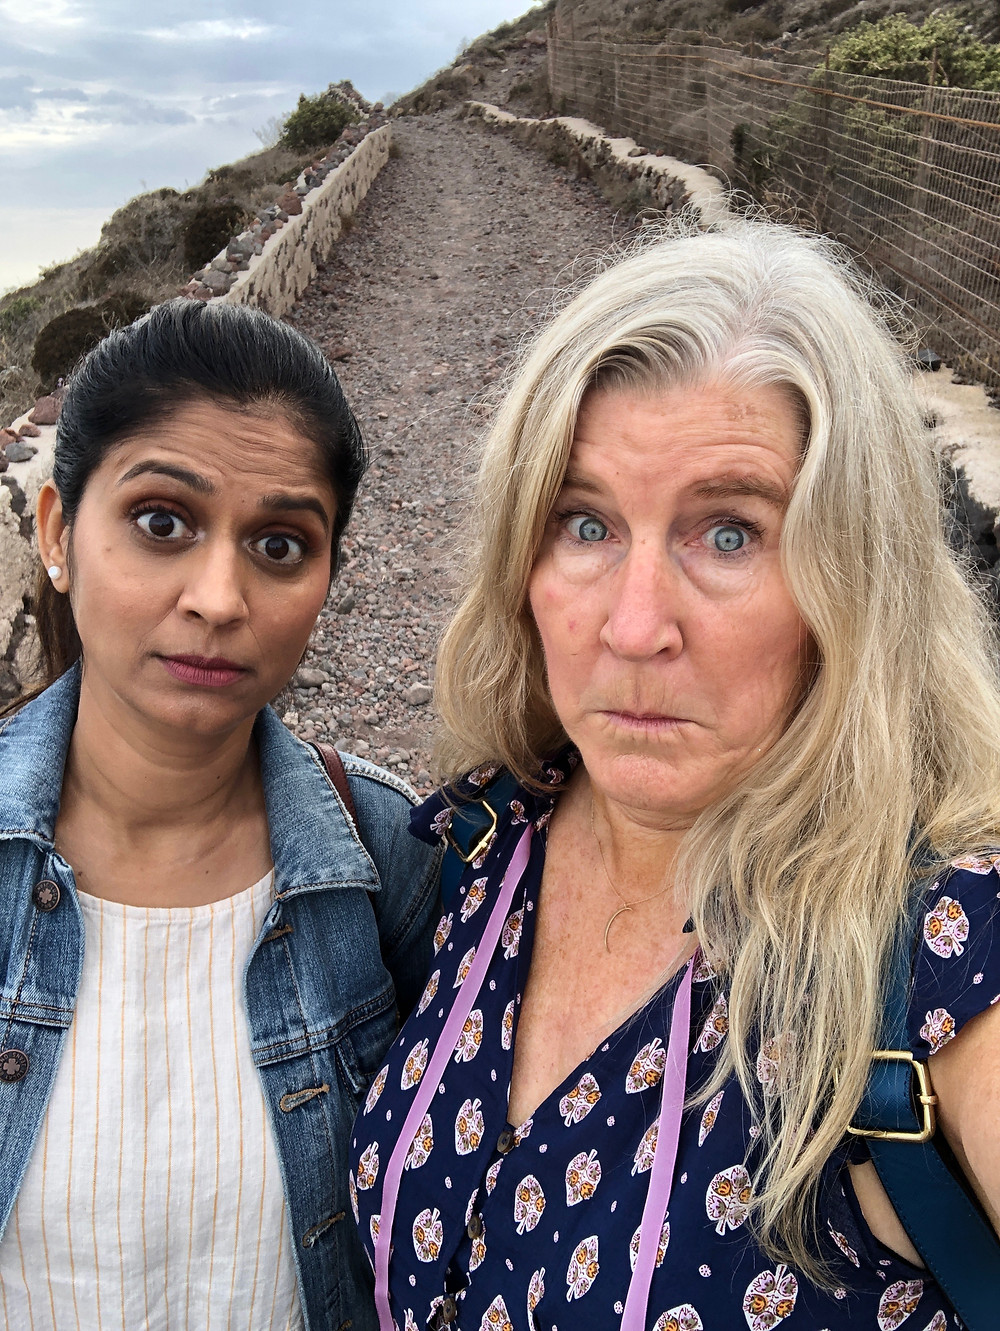 Vaishali Patel of Sanskar Teaching and Siri Kay Jostad of Wander Away with Siri Kay on the path between Oia and Fira in Santorini Greece